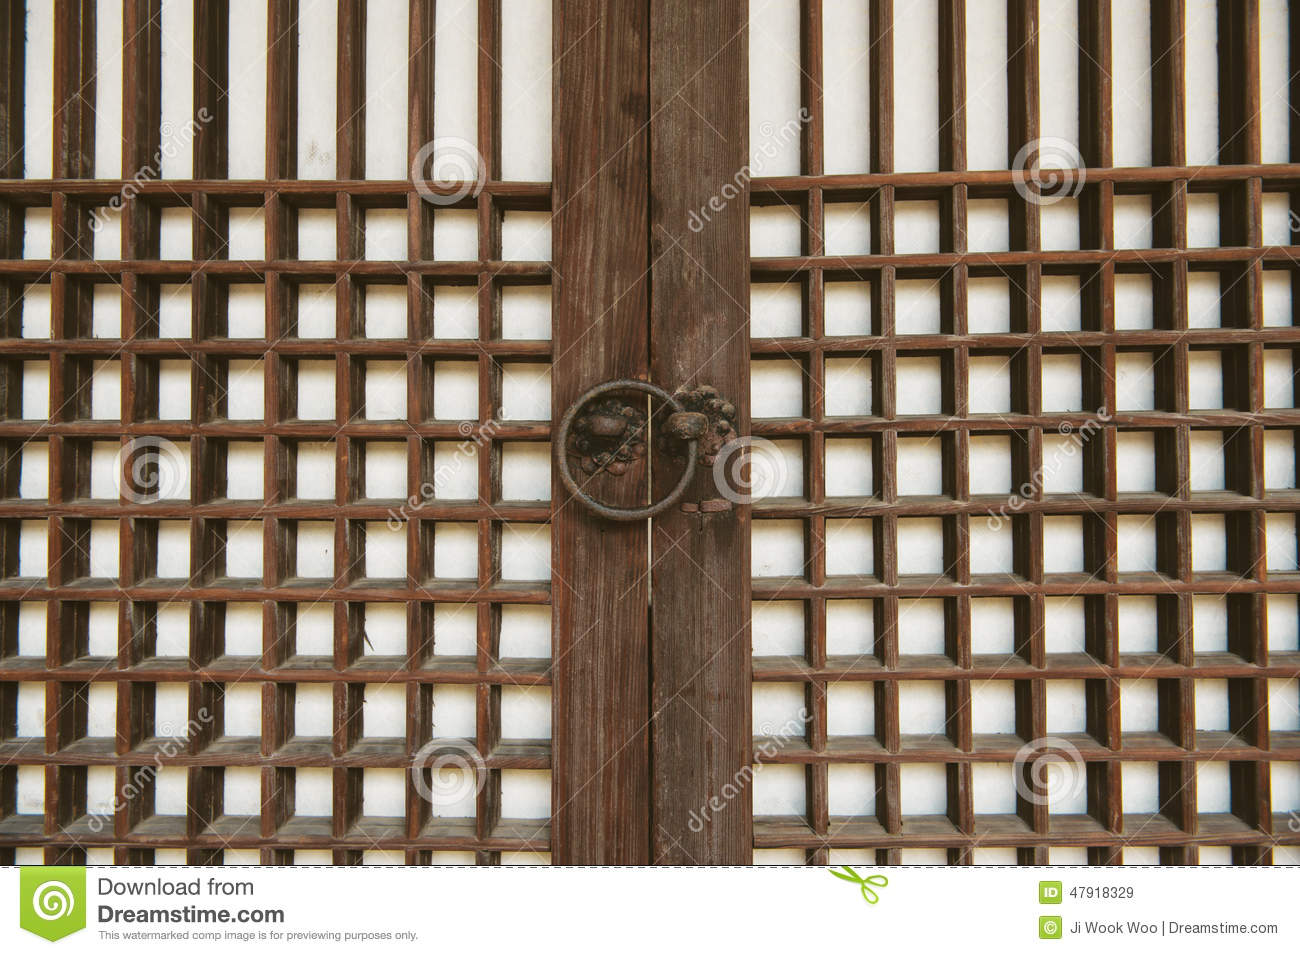 Asian doors and doorknob & Asian doors and doorknob stock image. Image of remains - 47918329